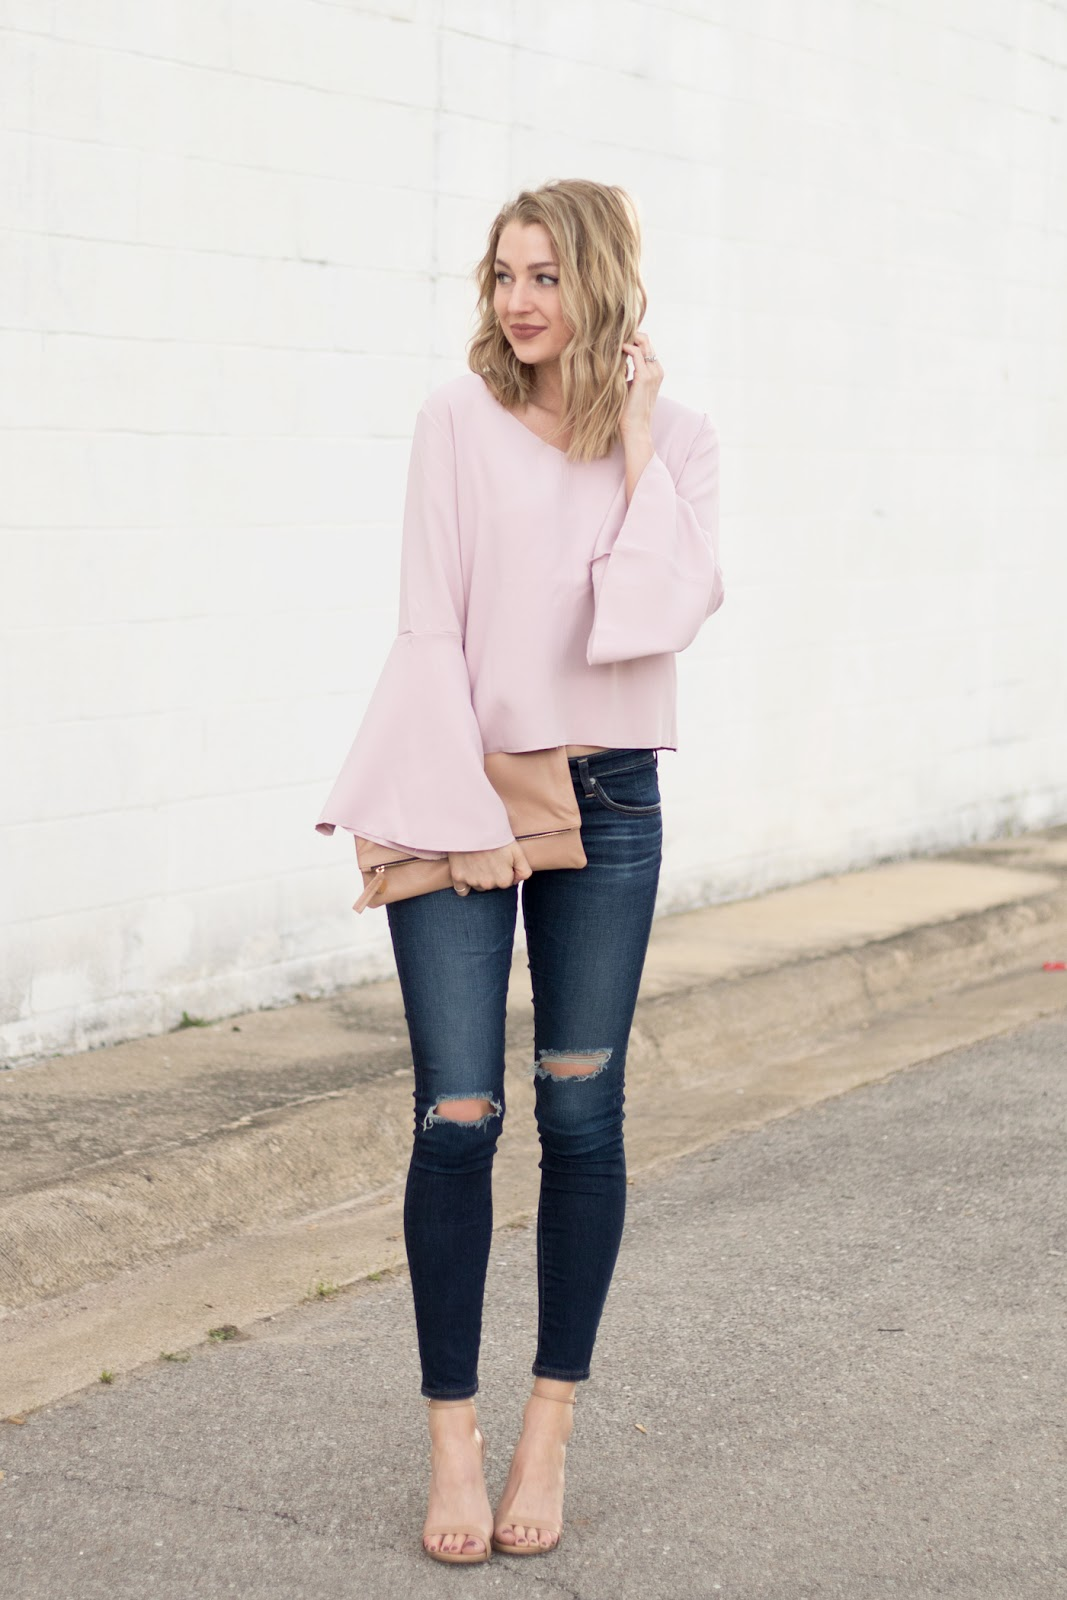 Bell sleeve top with distressed skinnies